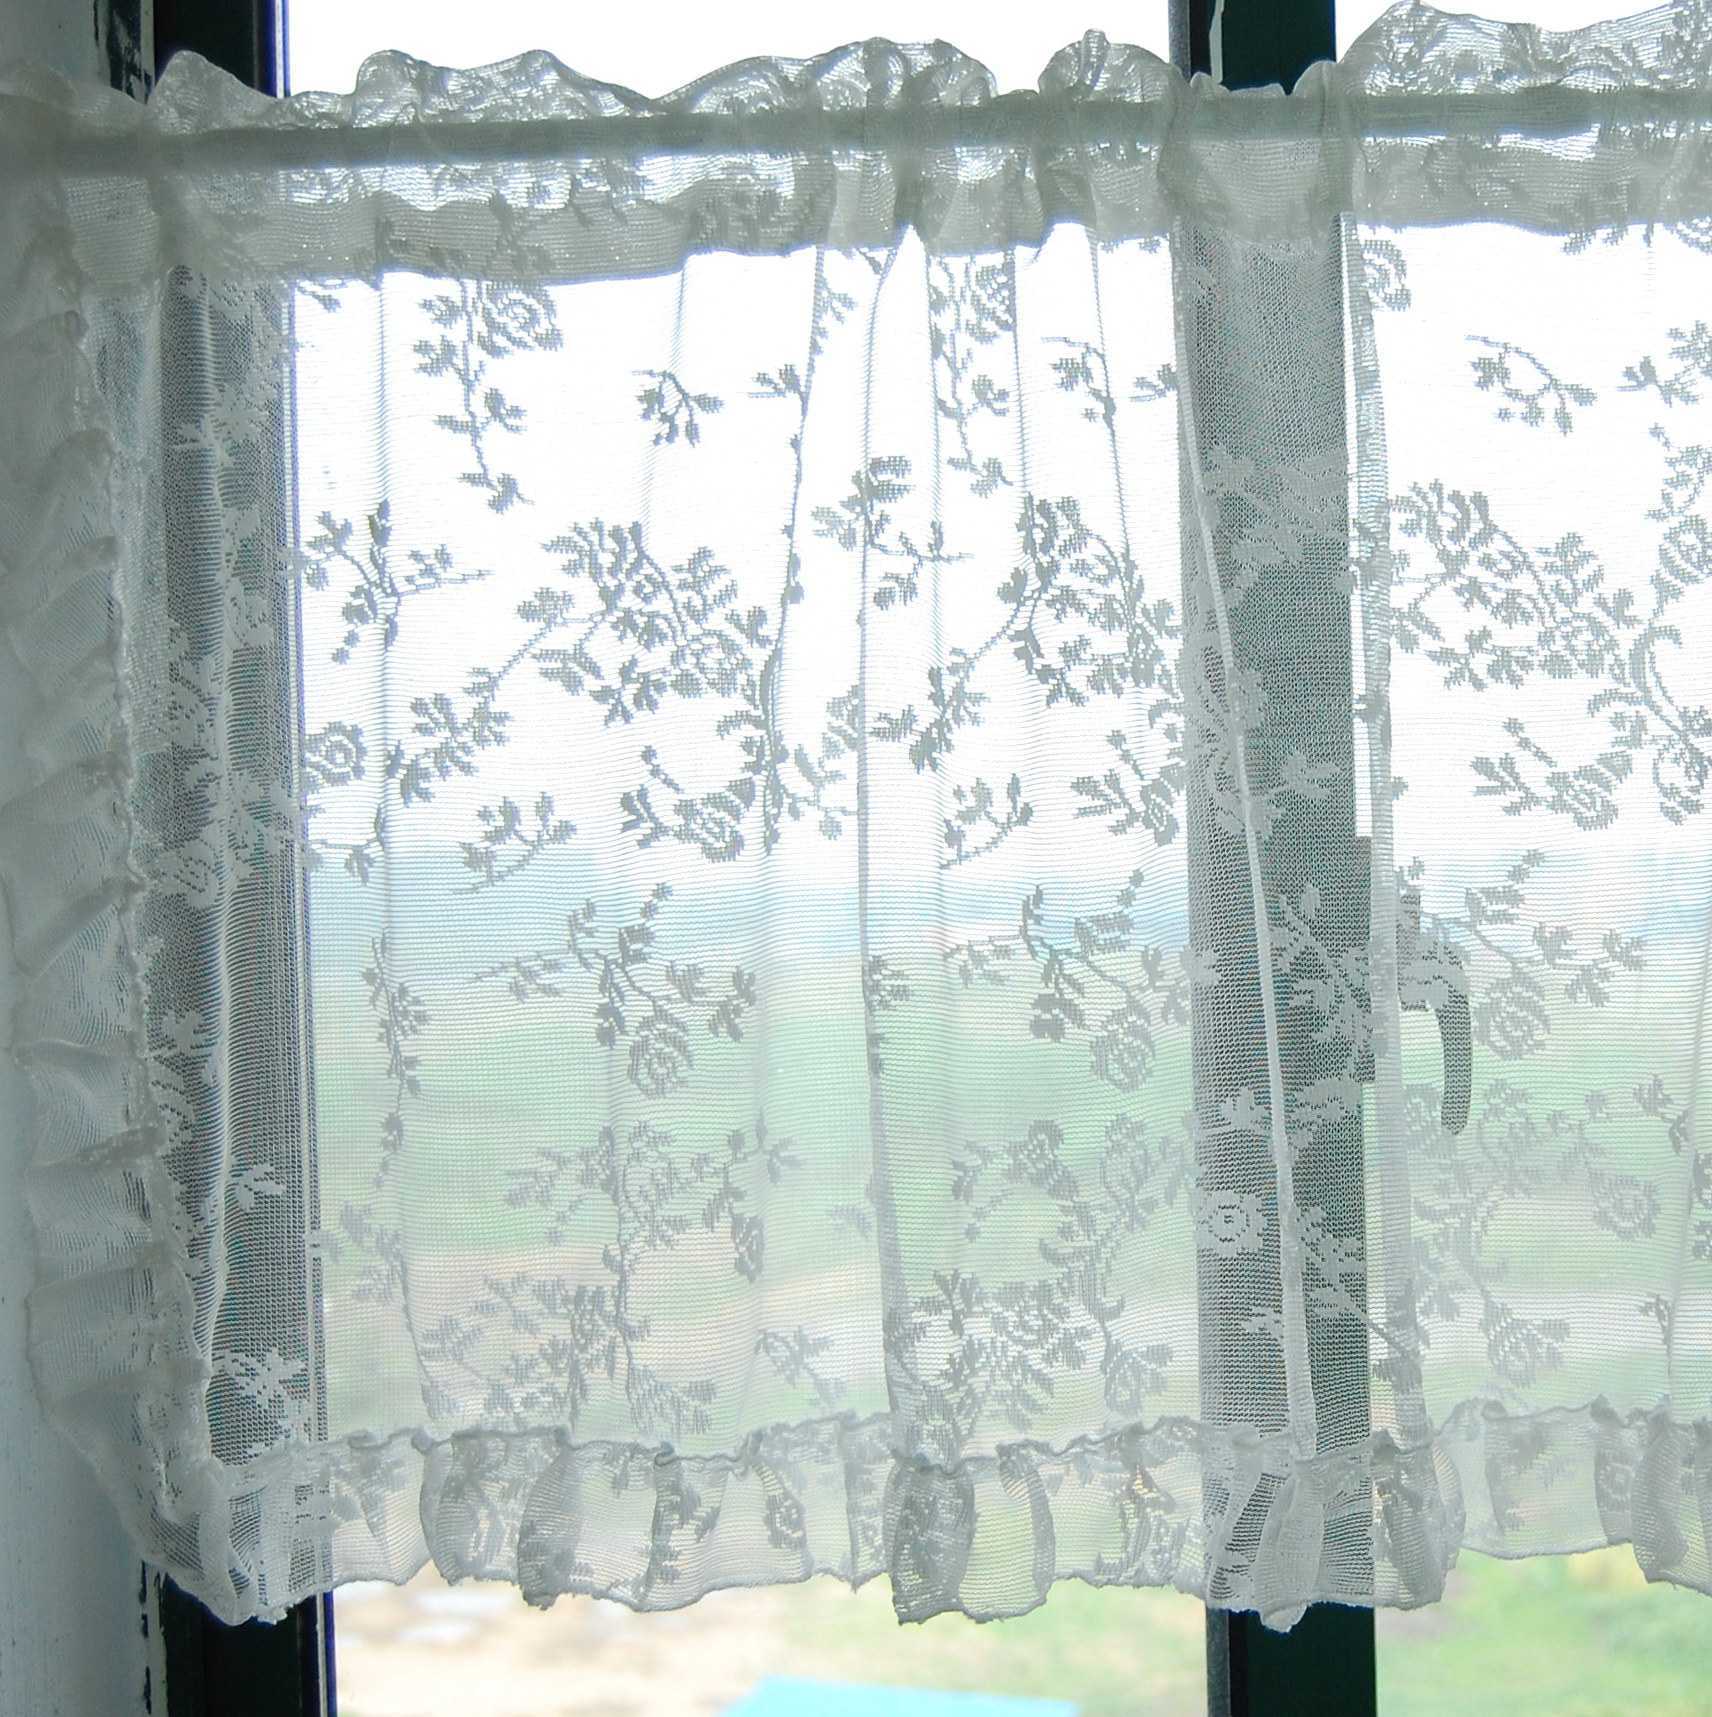 Lace Curtains For Kitchen Windows | Home Design Ideas